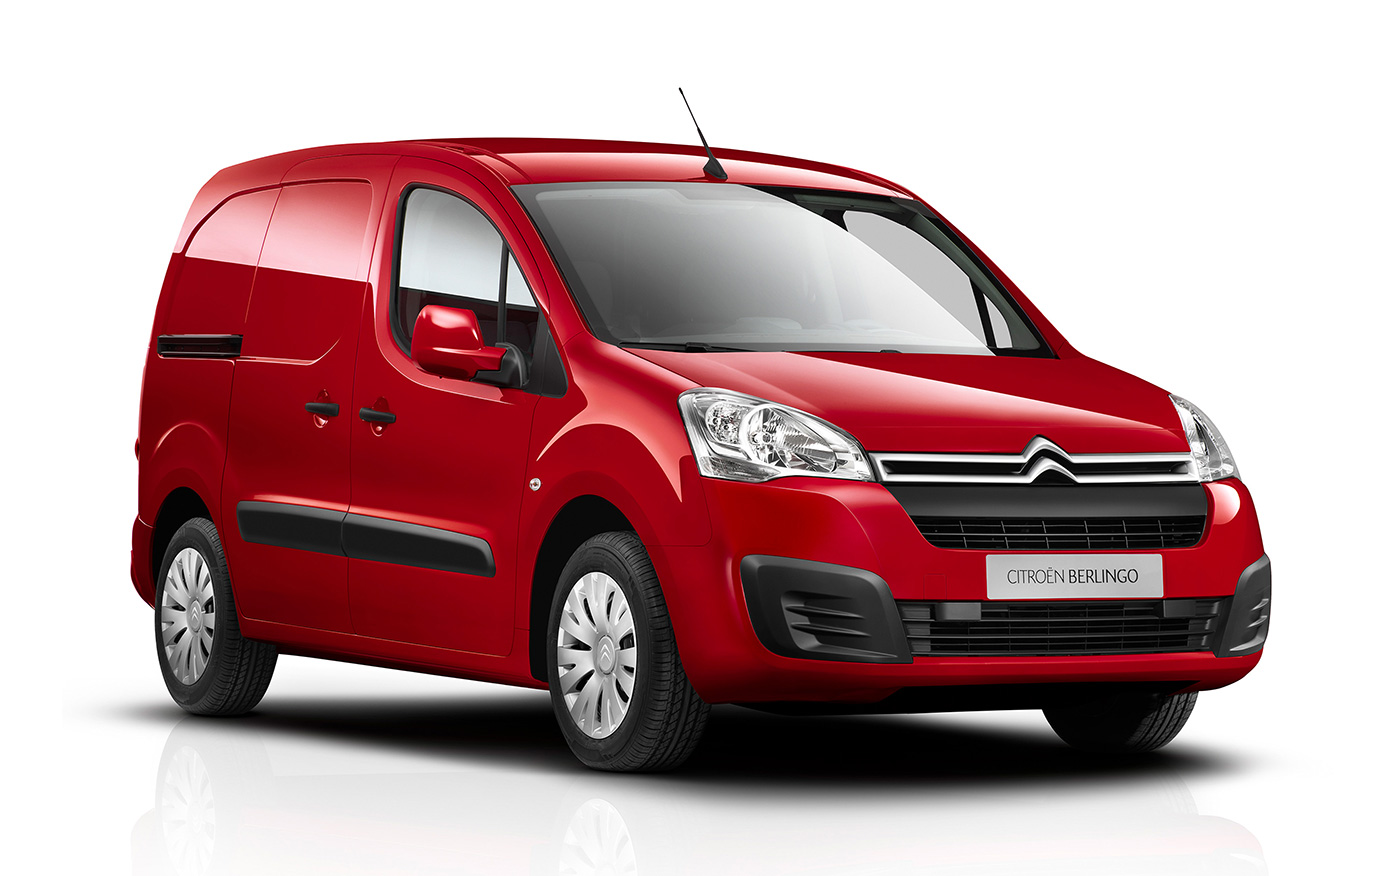 Citroen Berlingo 1.6 Bluehdi L1 625 LX 75hp